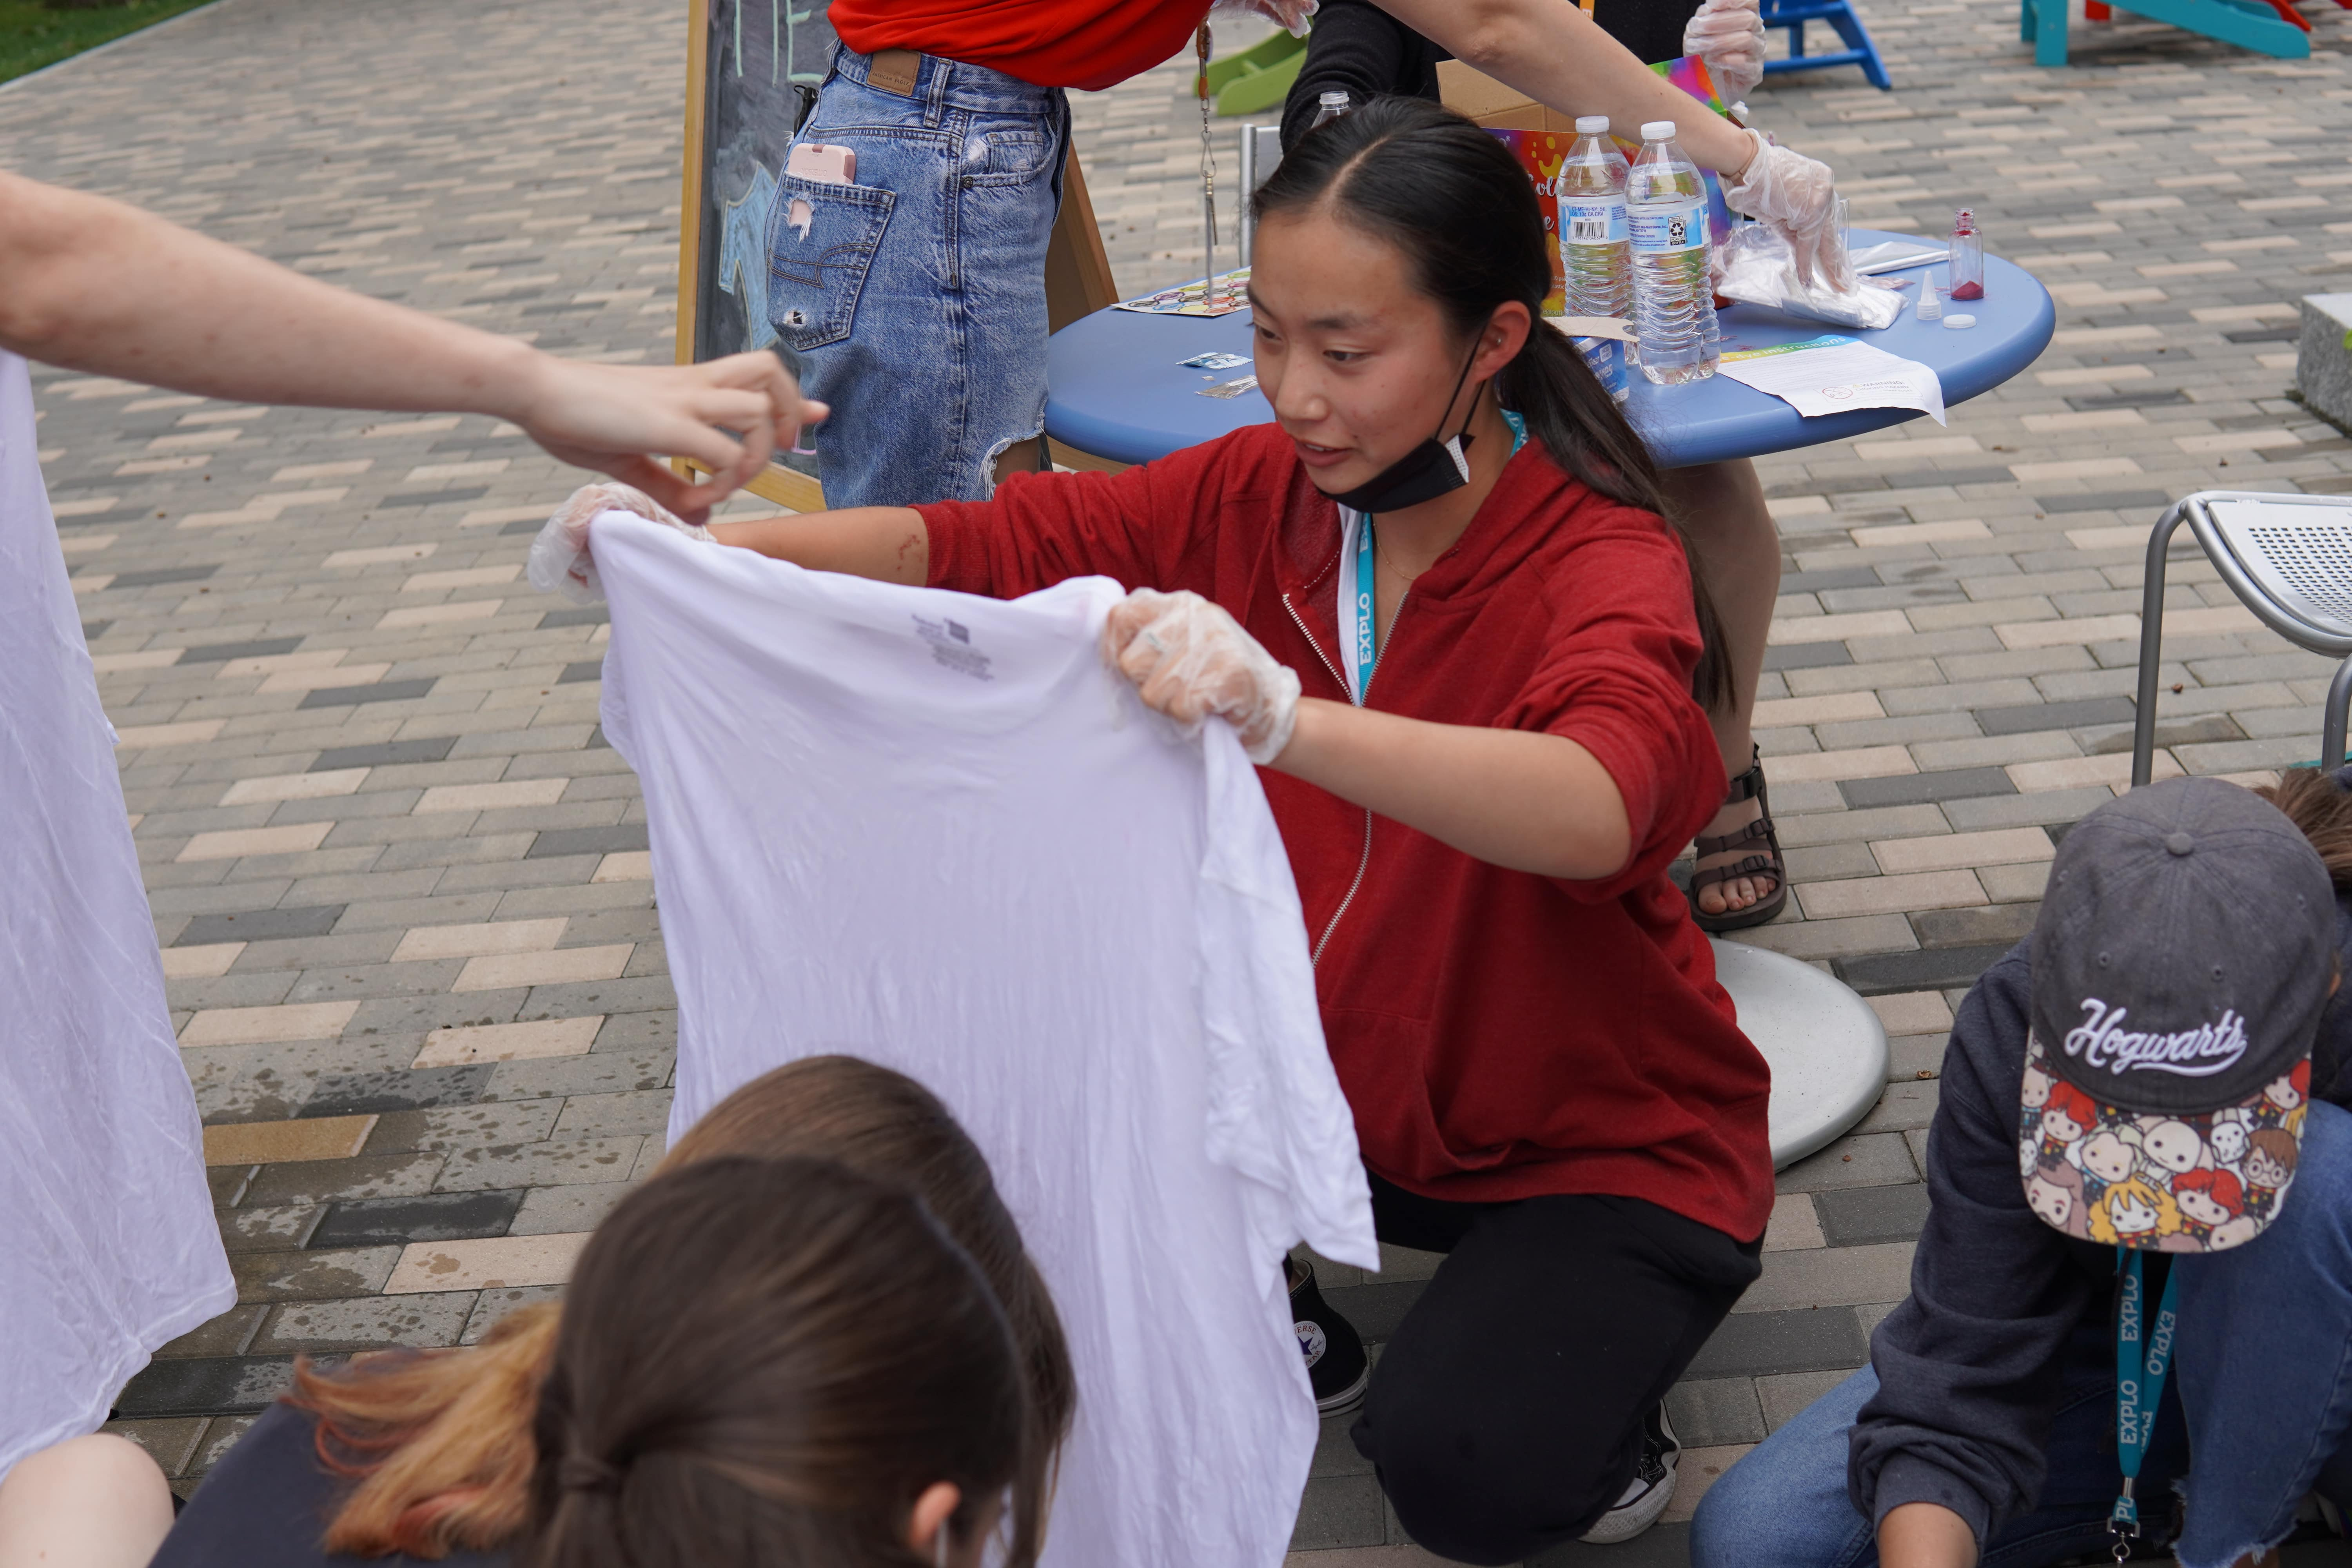 A student kneels with a white shirt before submerging it in water before the dyeing process.